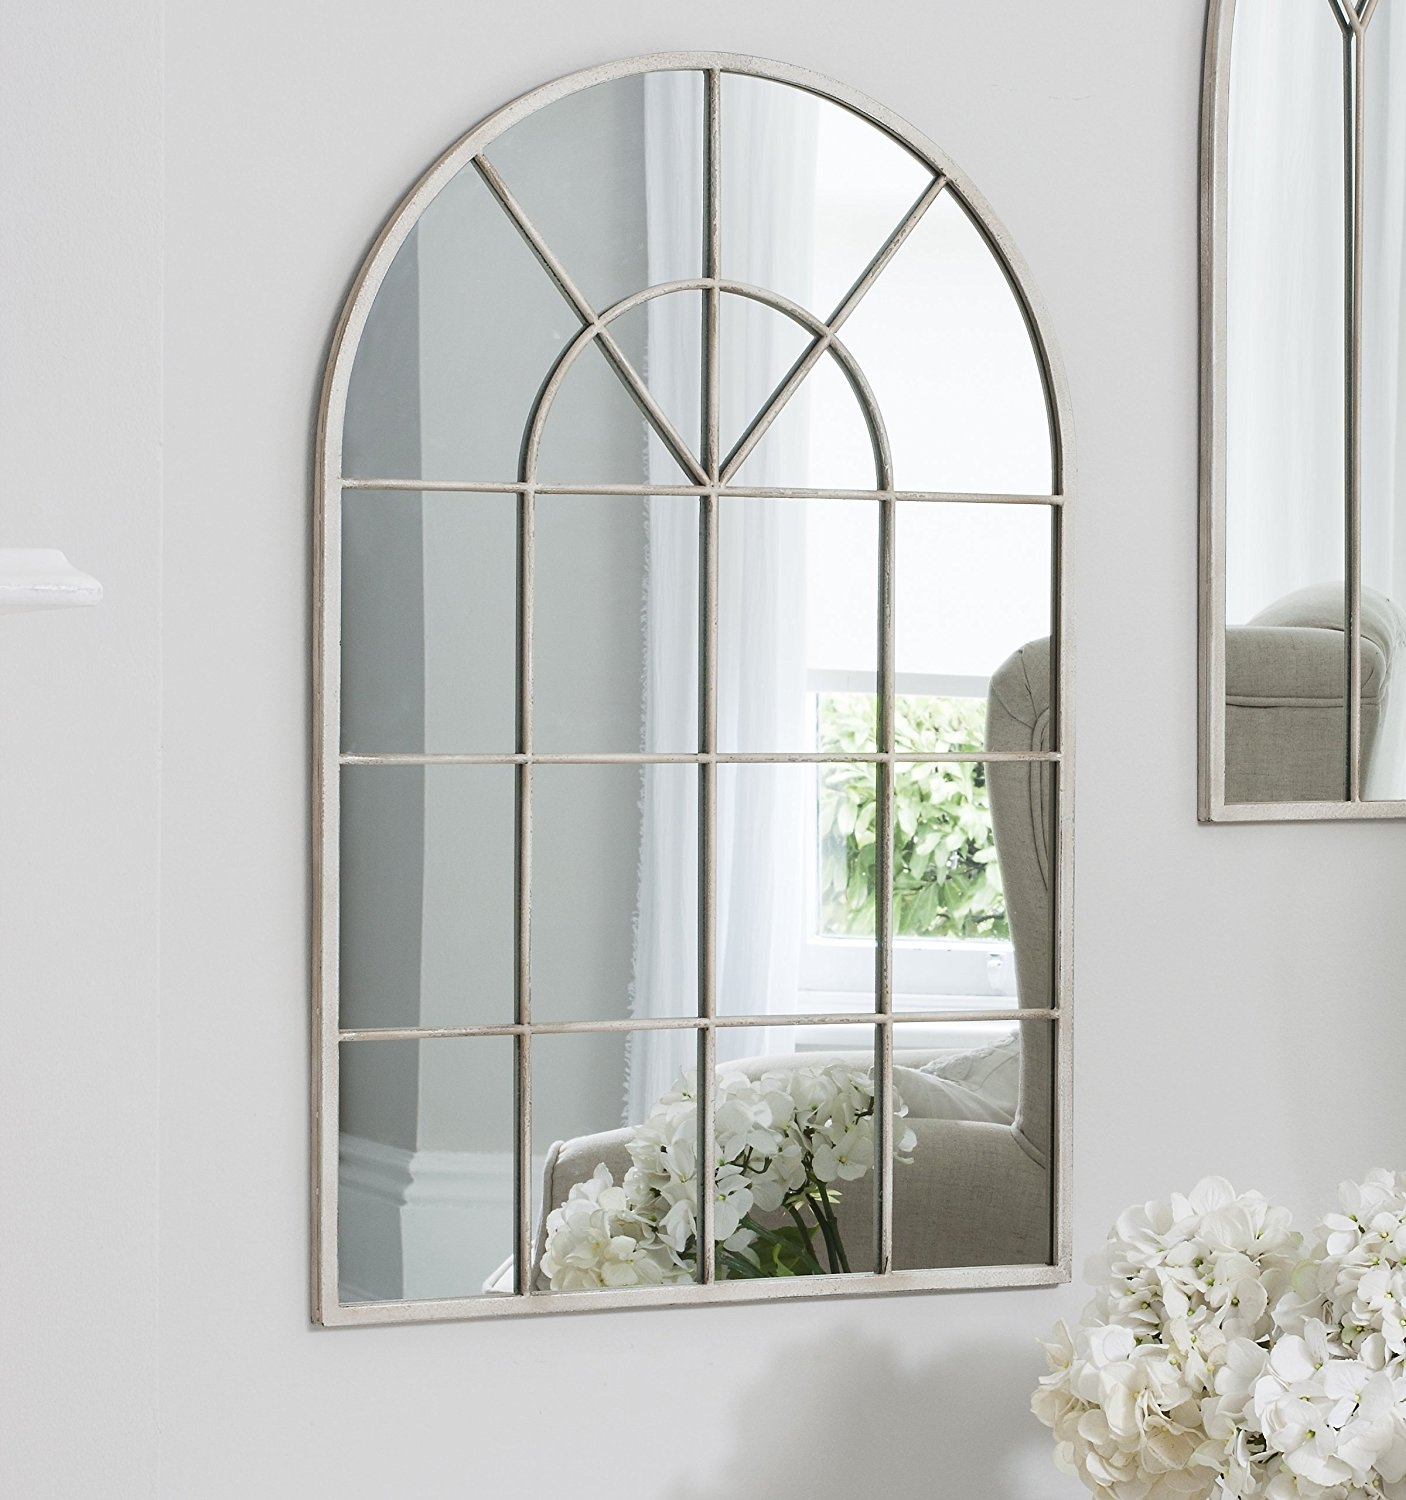 Kelford Large Vintage Cream Metal Arched Window Wall Mirror 355in For White Arch Mirror (Image 9 of 15)